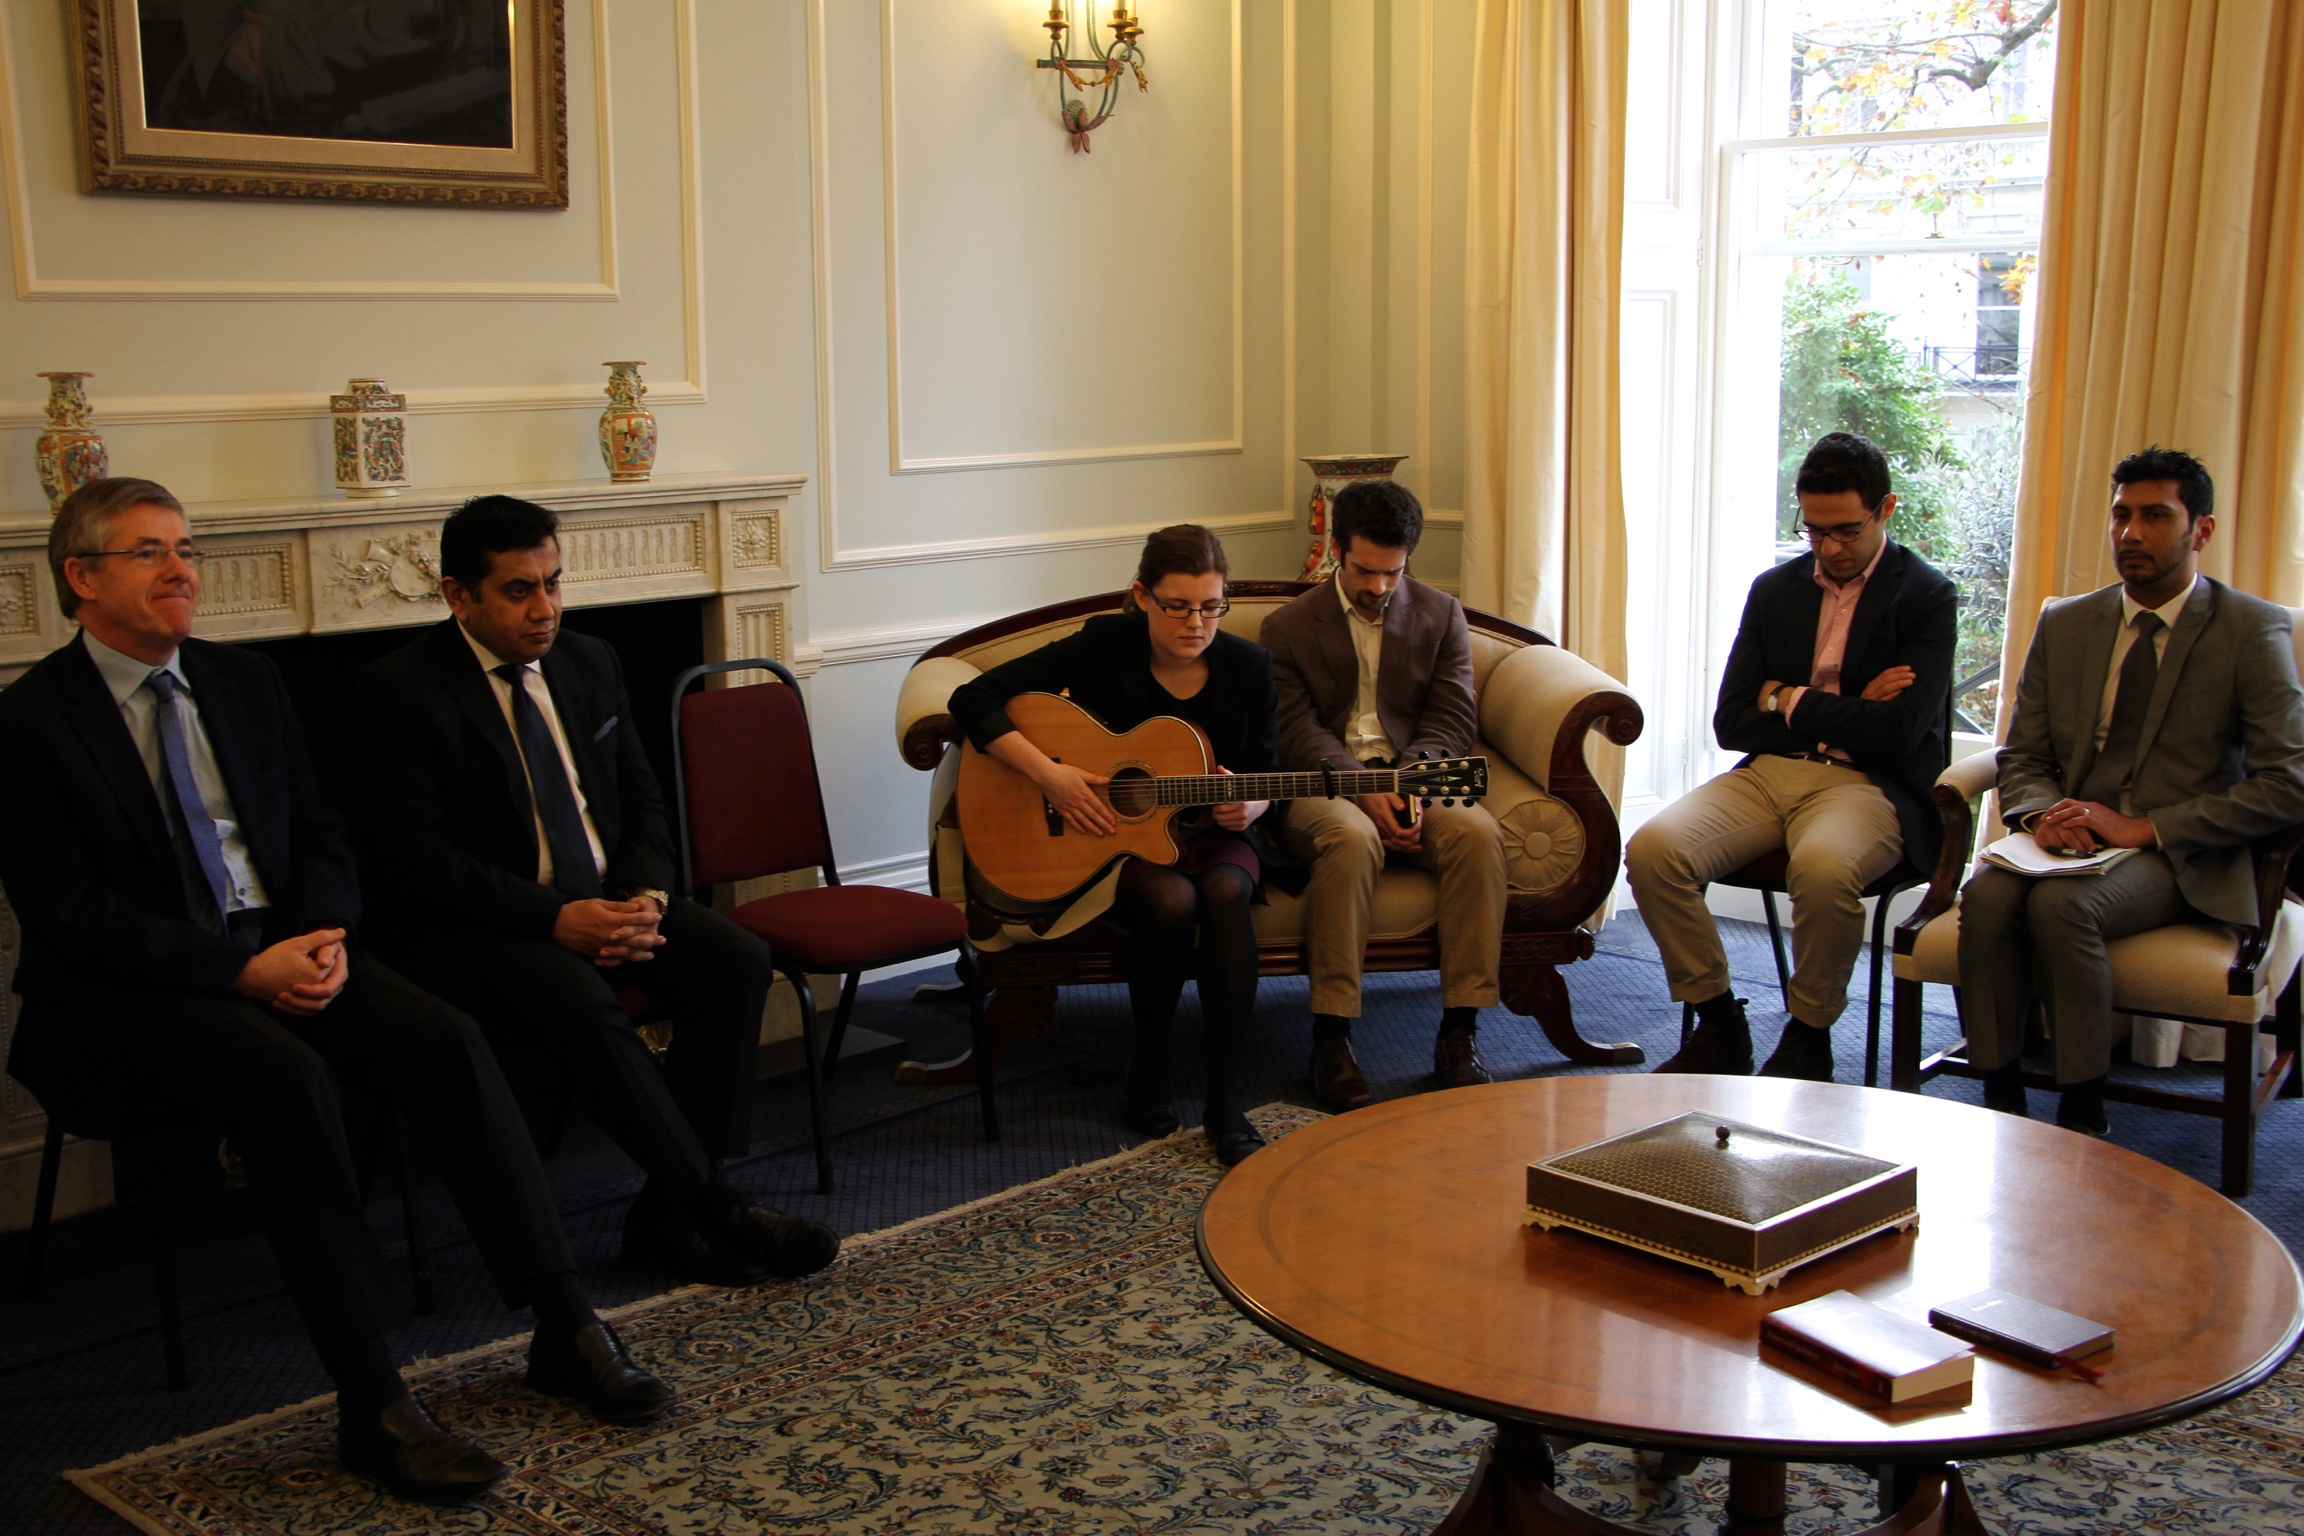 Members of the Bahai community and Lord Ahmad sit together during the programme, which included prayers and music